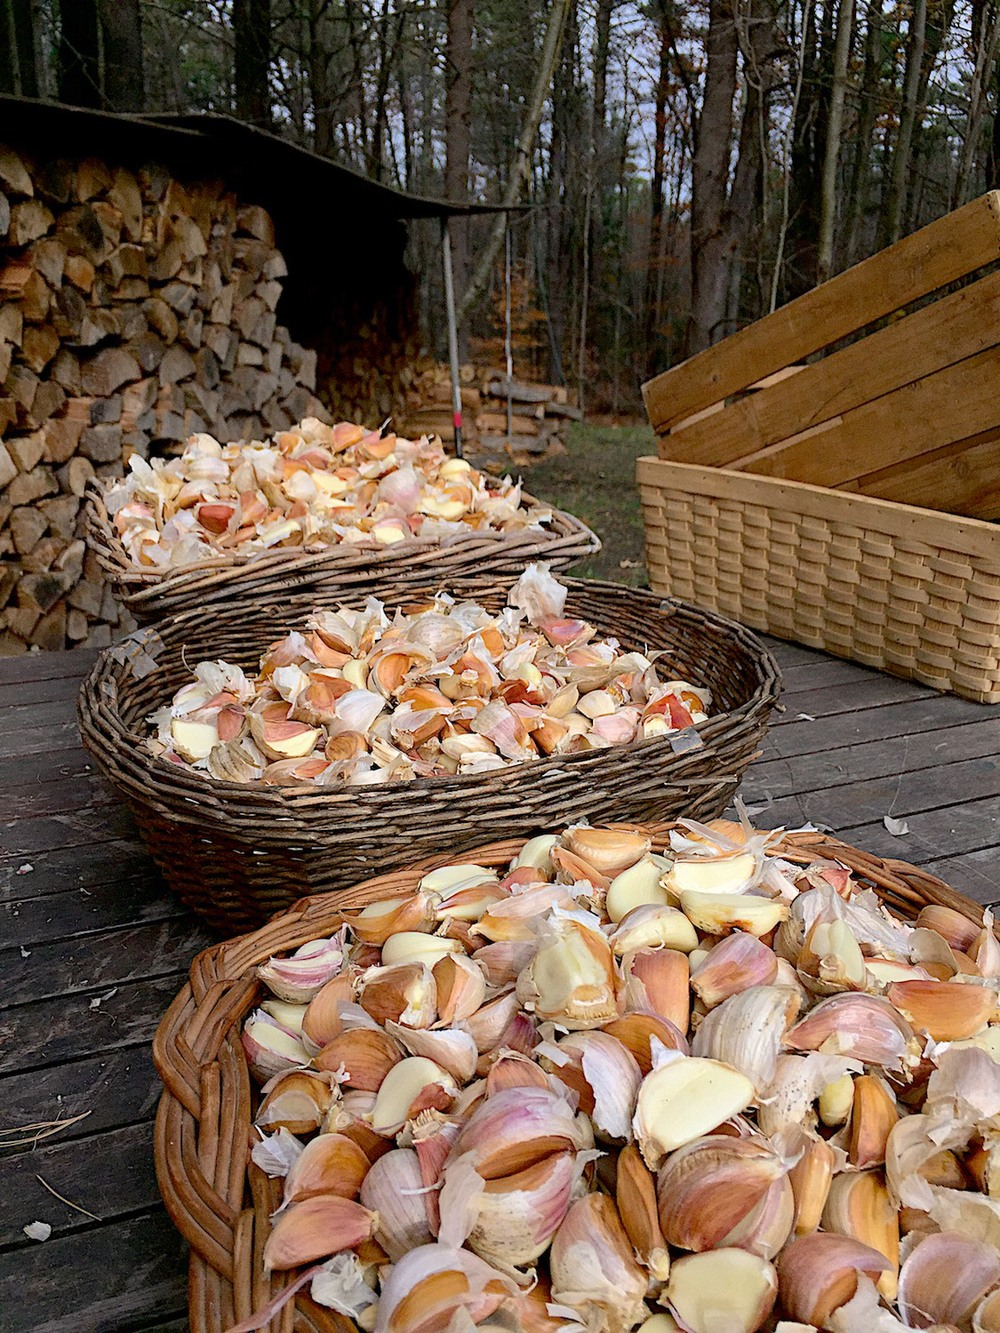 Three large baskets of individual cloves ready for planting